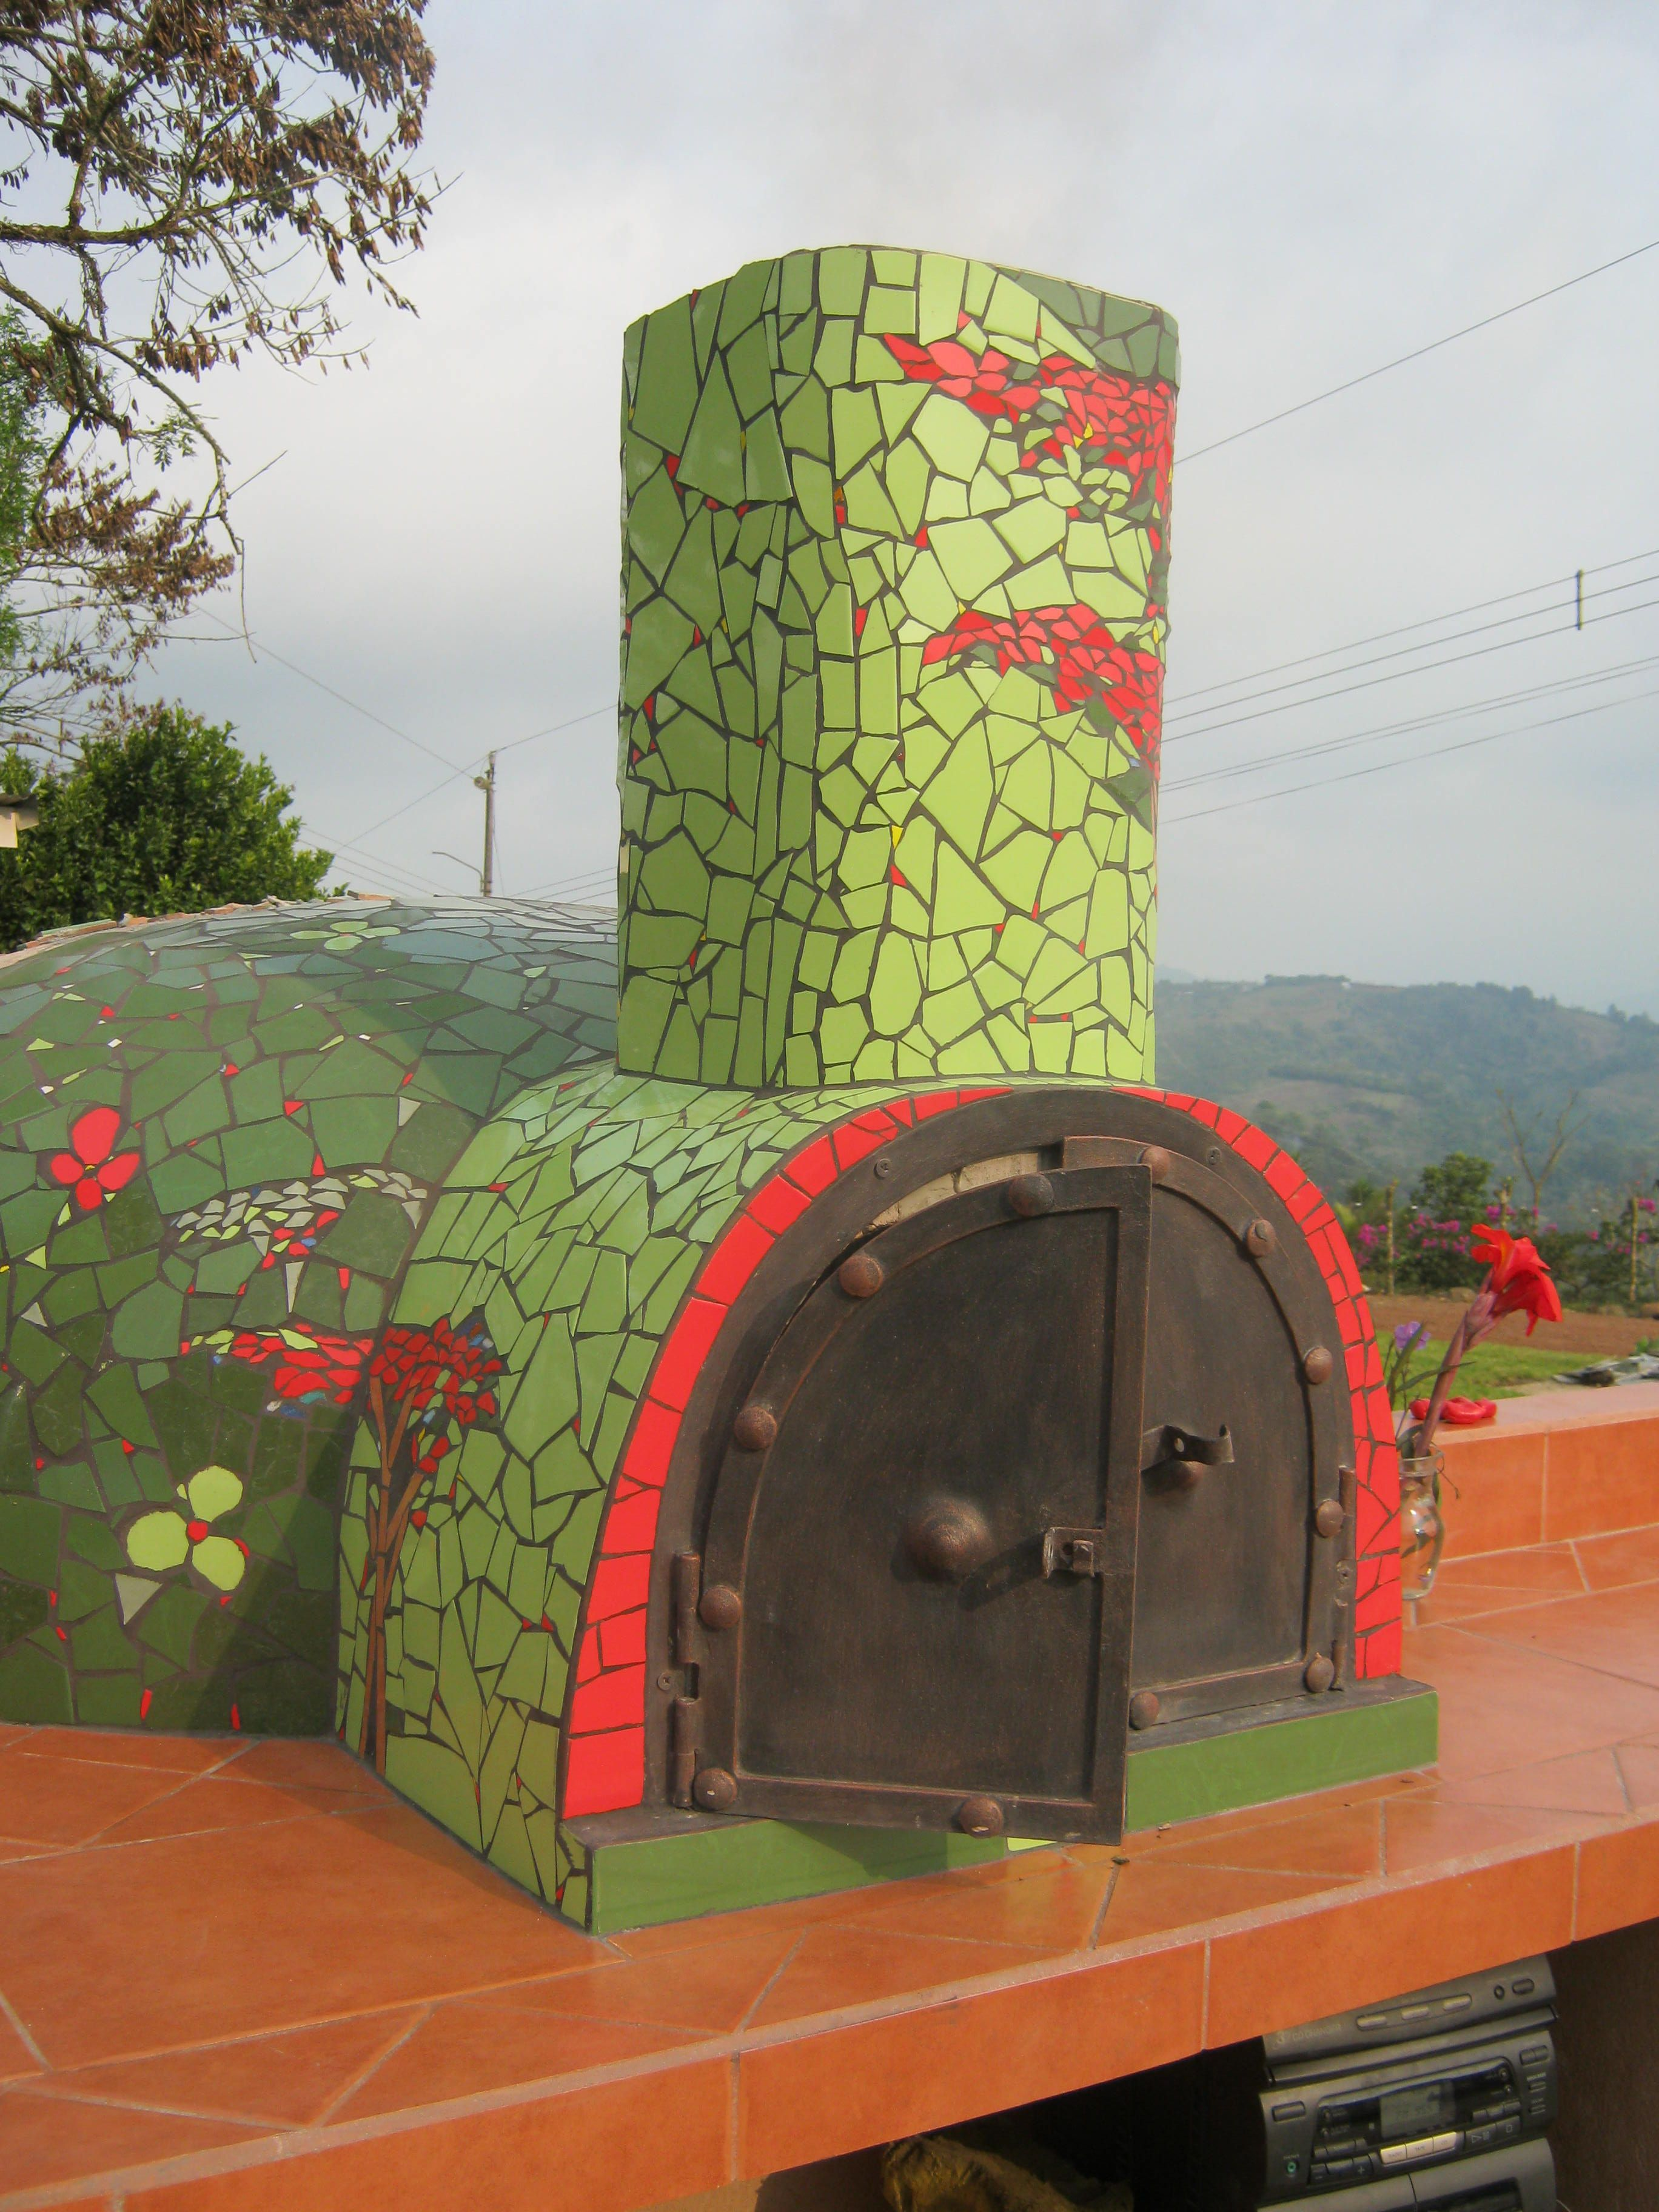 Faire Son Four A Pizza Exterieur mosaic pizza ovenernesto spinelli, san ramon, costa rica